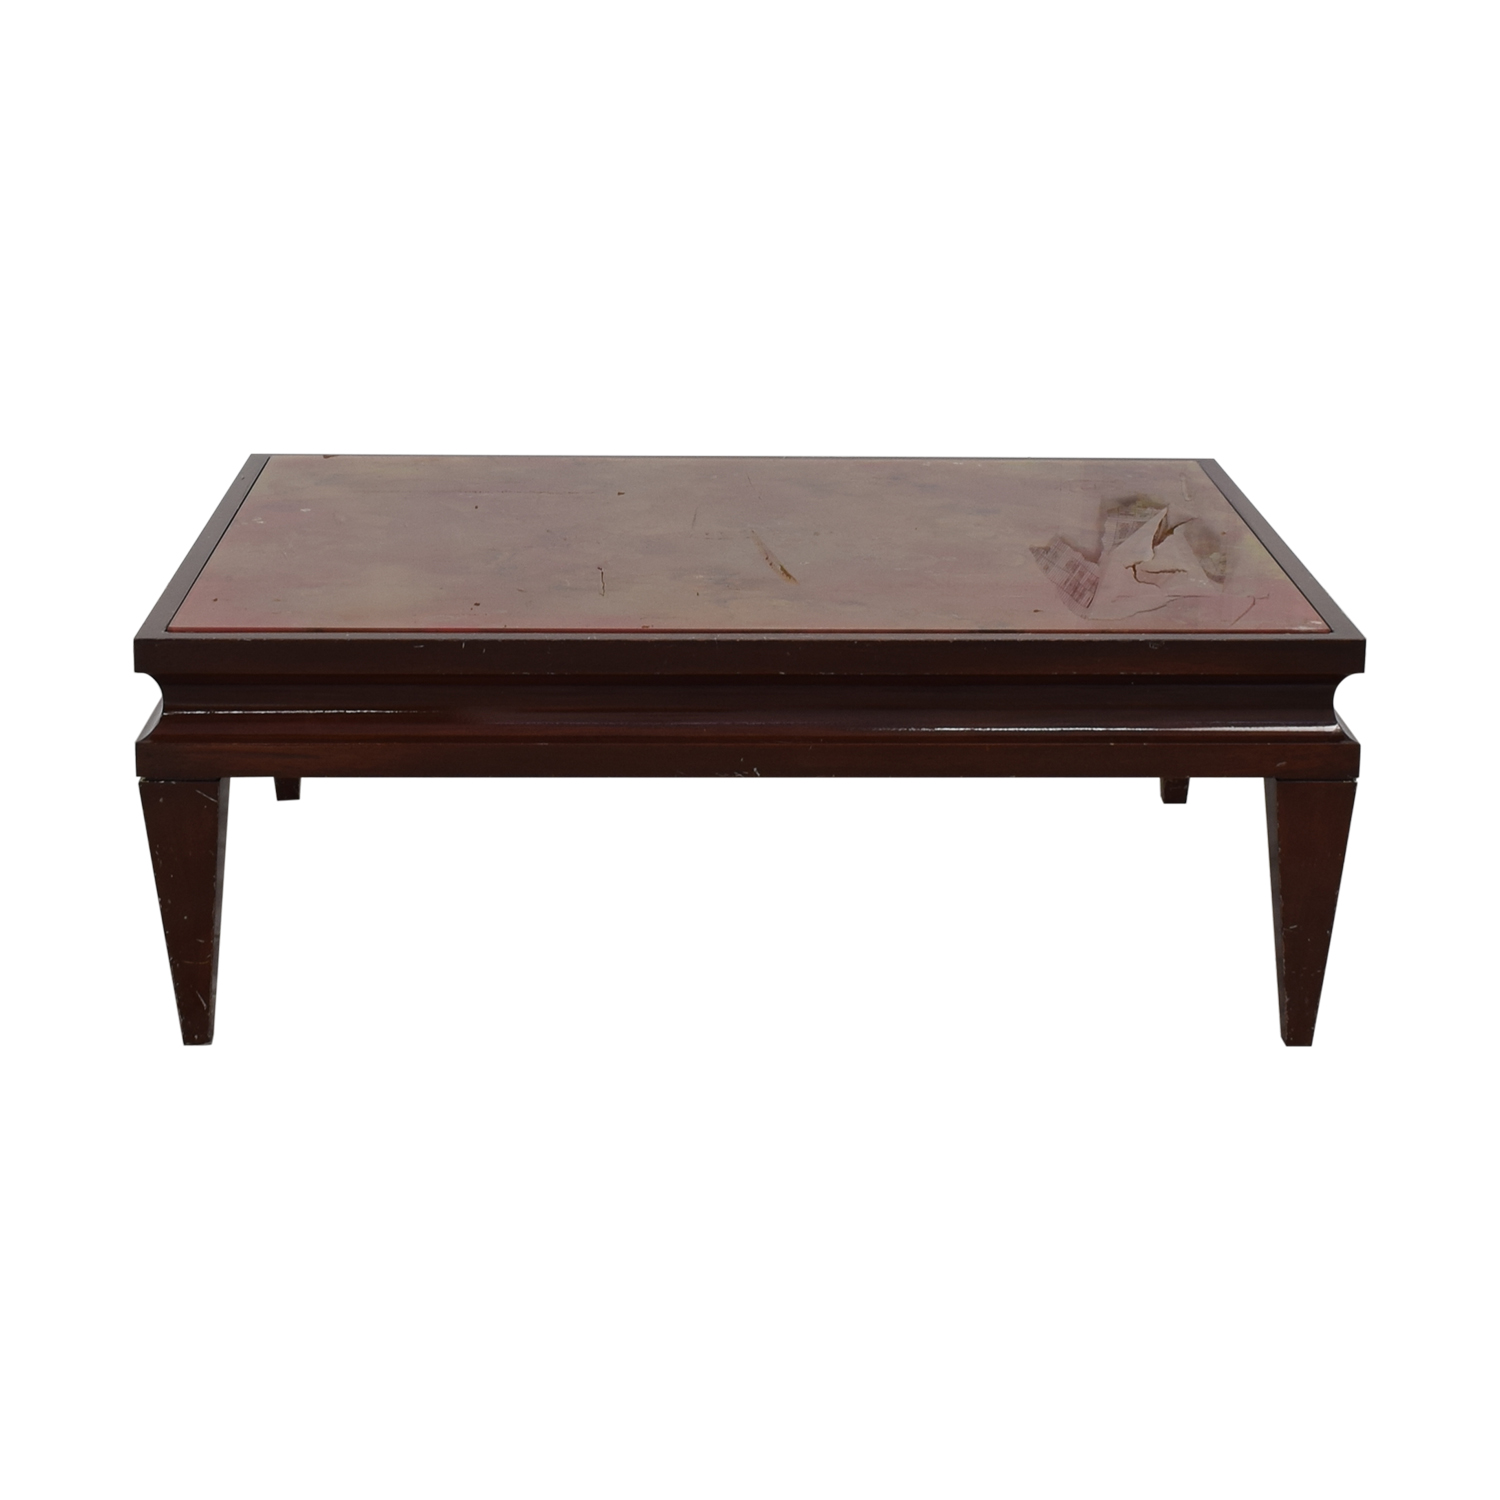 Vintage Coffee Table price